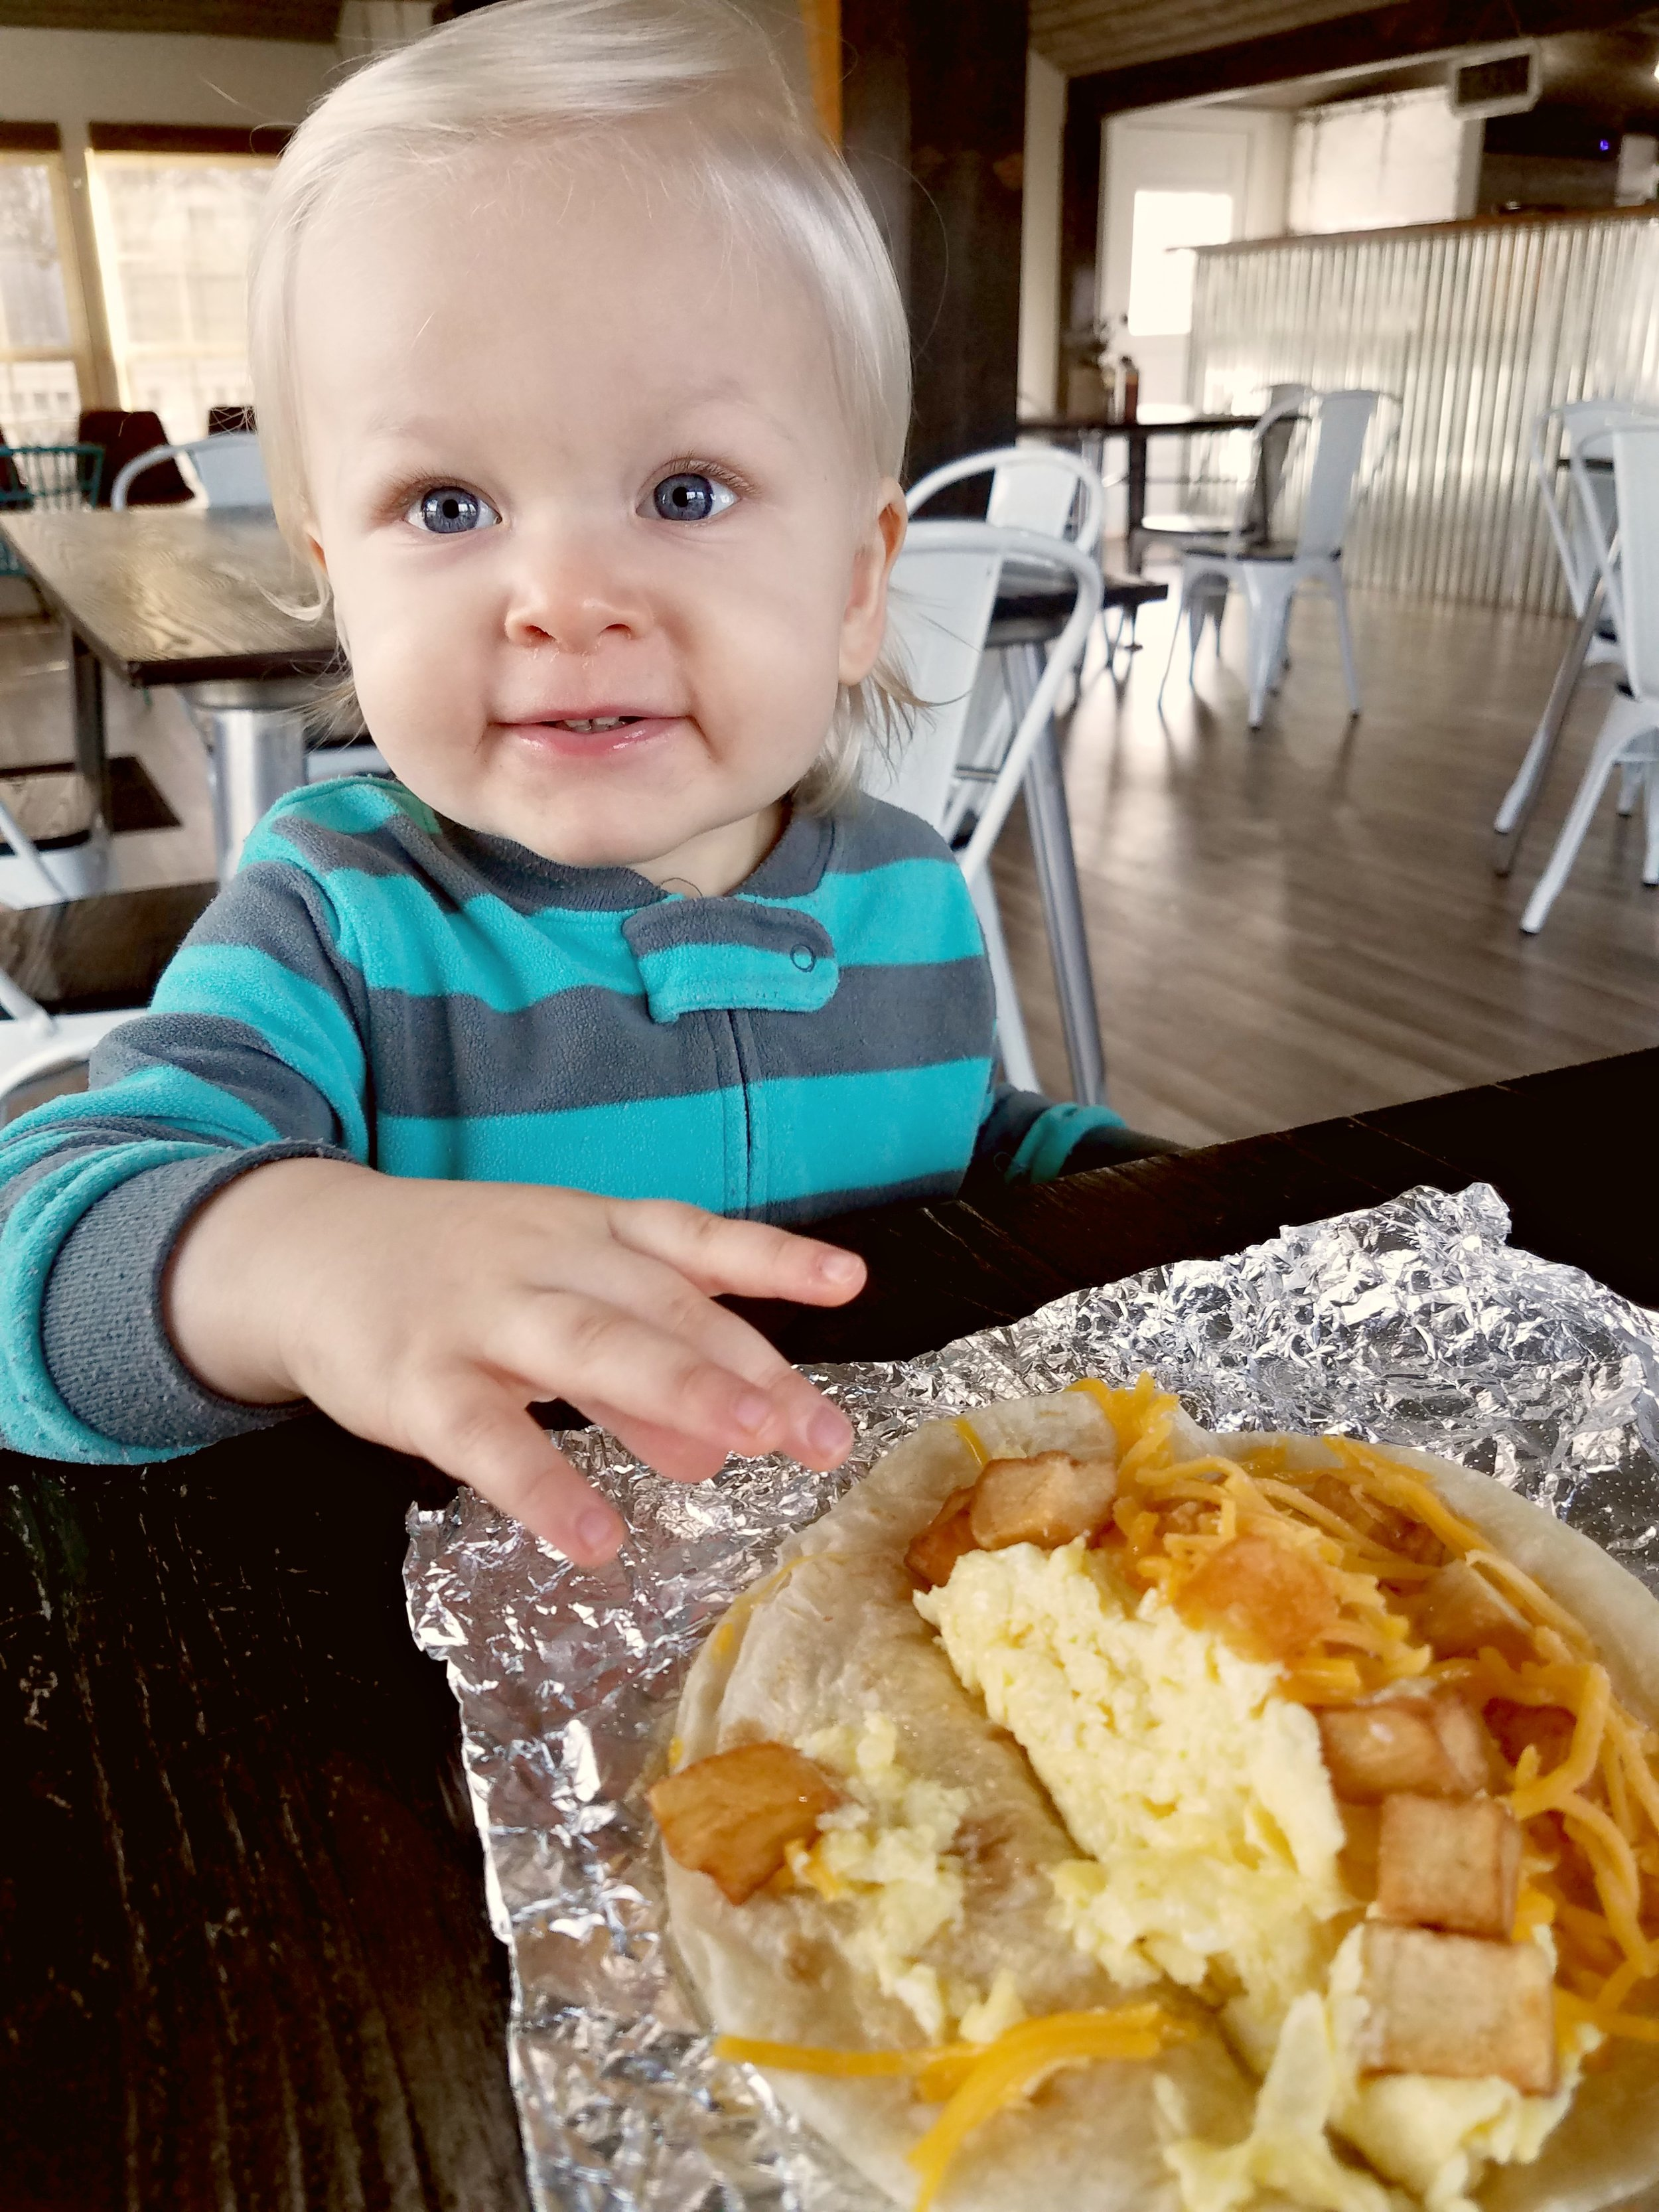 Even Baby loves Boerne Taco House!